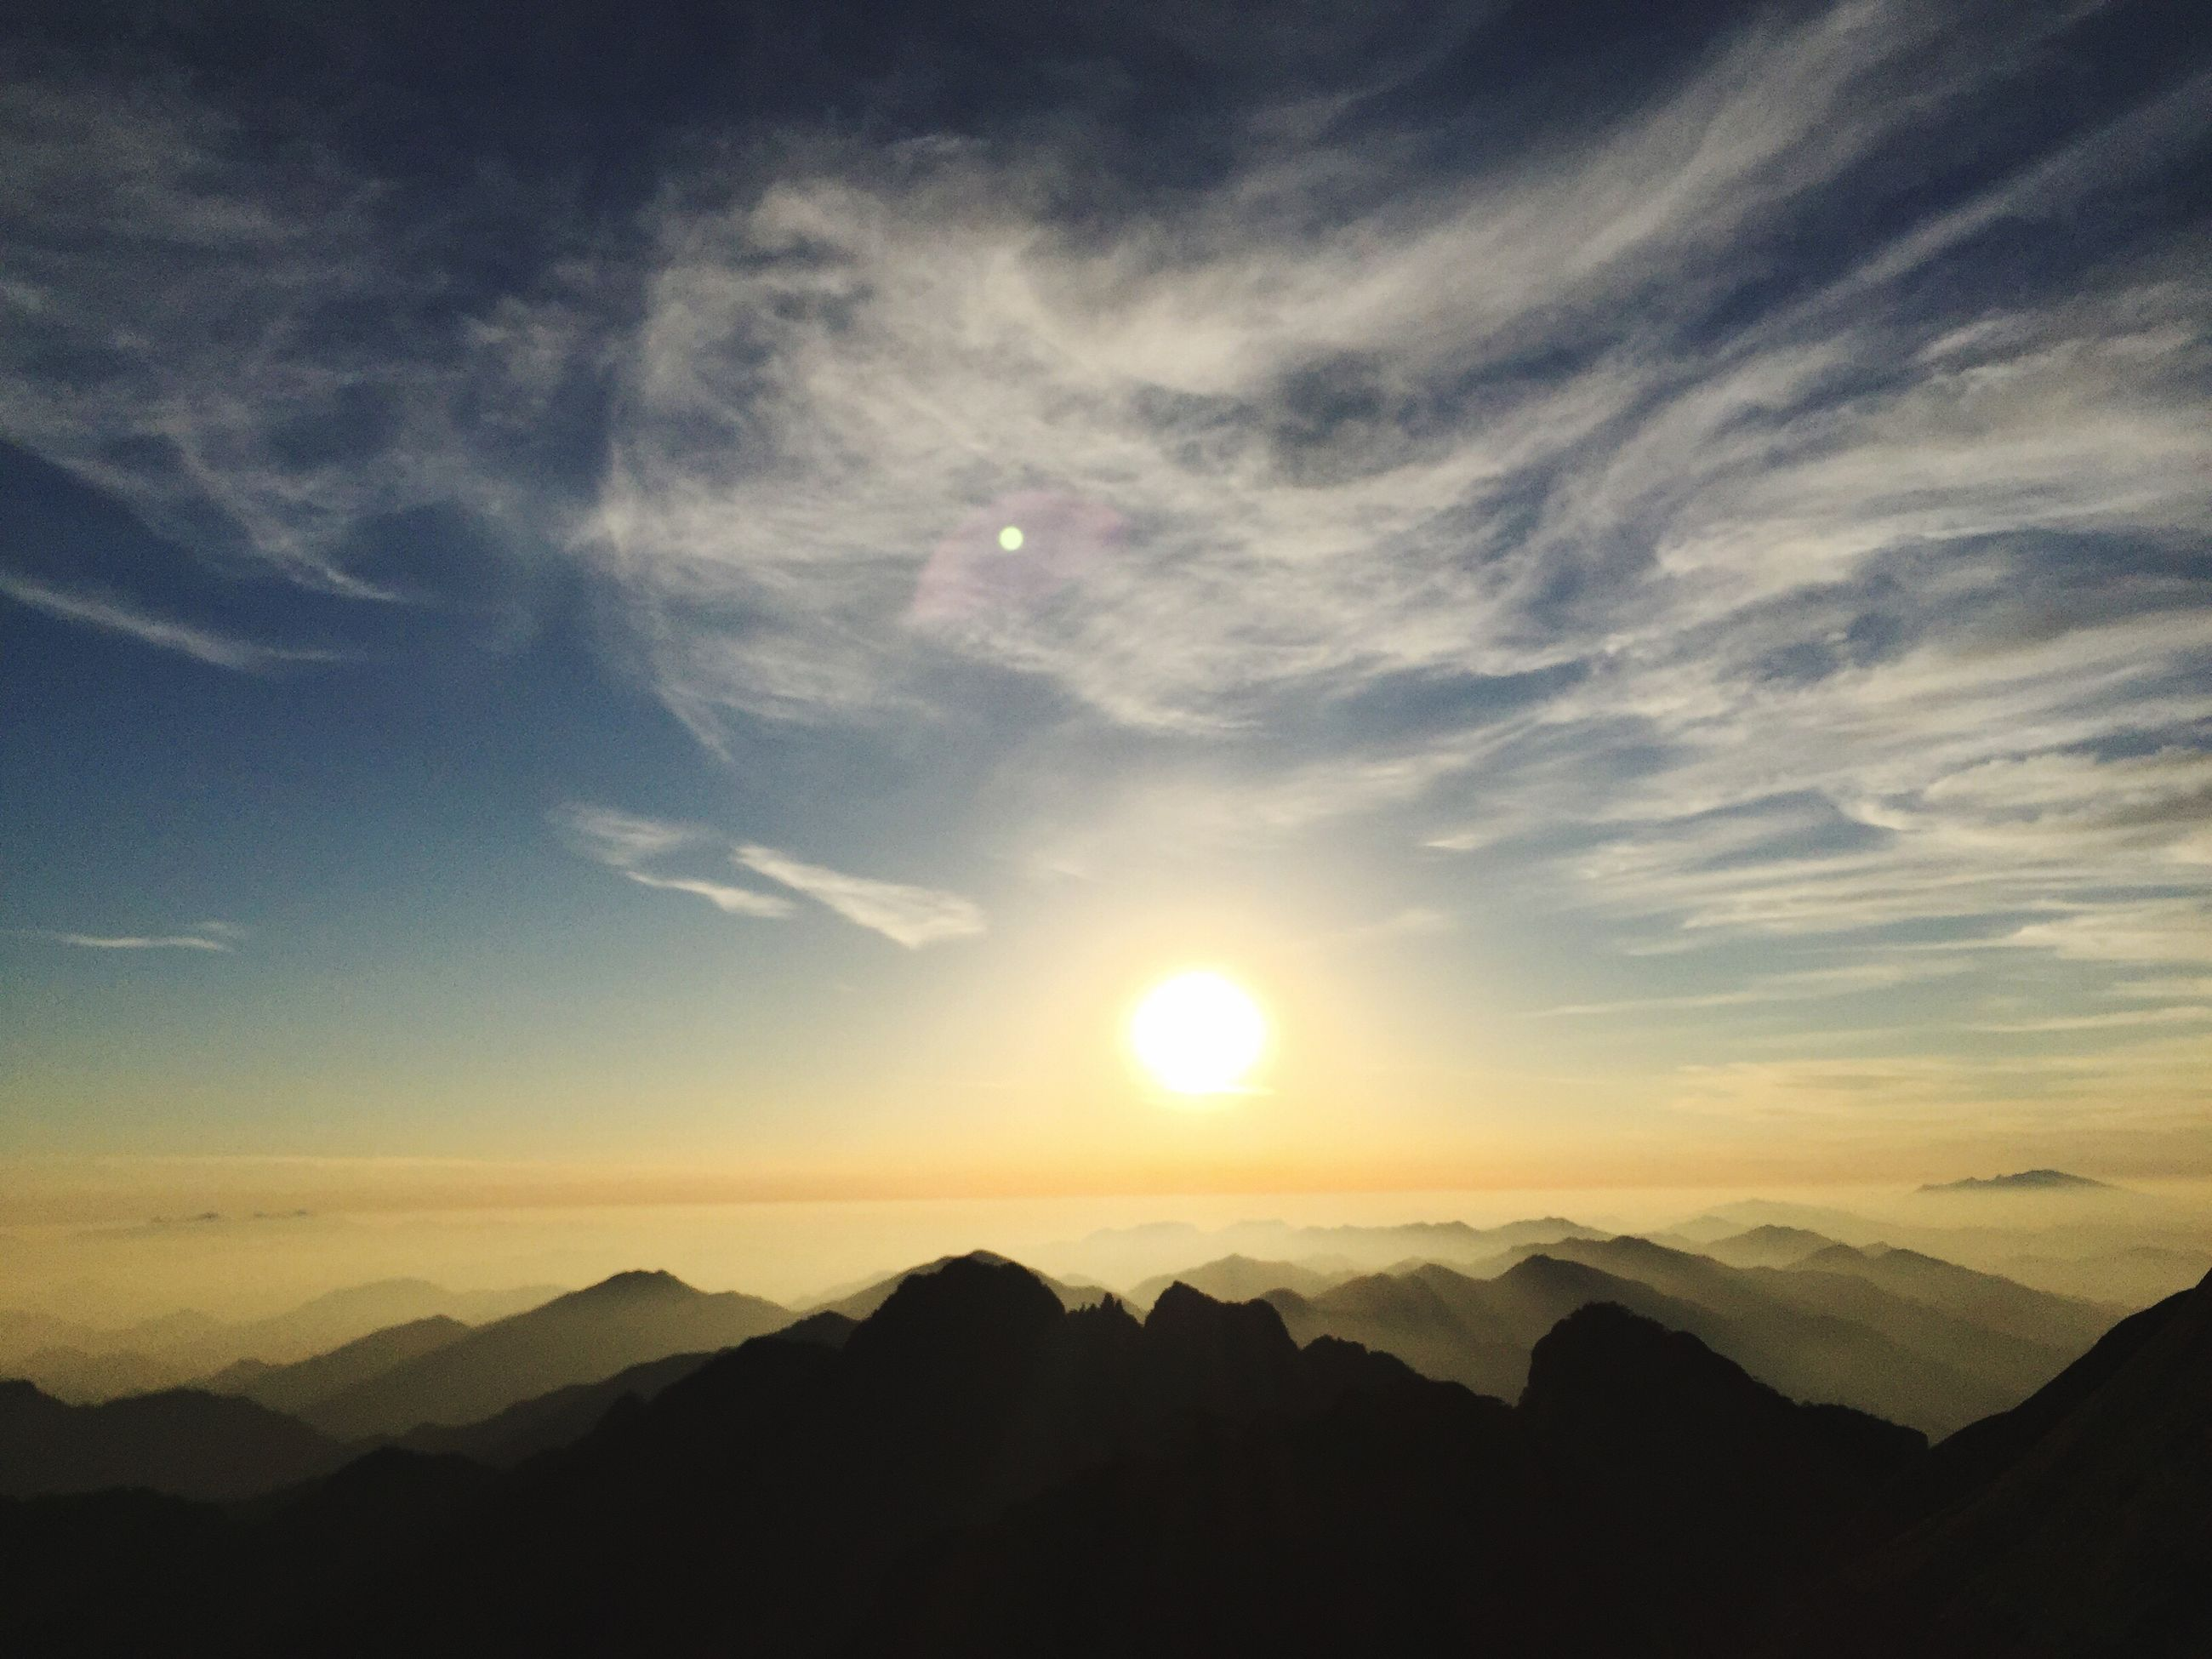 scenics, beauty in nature, sky, sun, sunset, nature, tranquility, silhouette, sunlight, no people, tranquil scene, sunbeam, outdoors, cloud - sky, landscape, mountain, astronomy, day